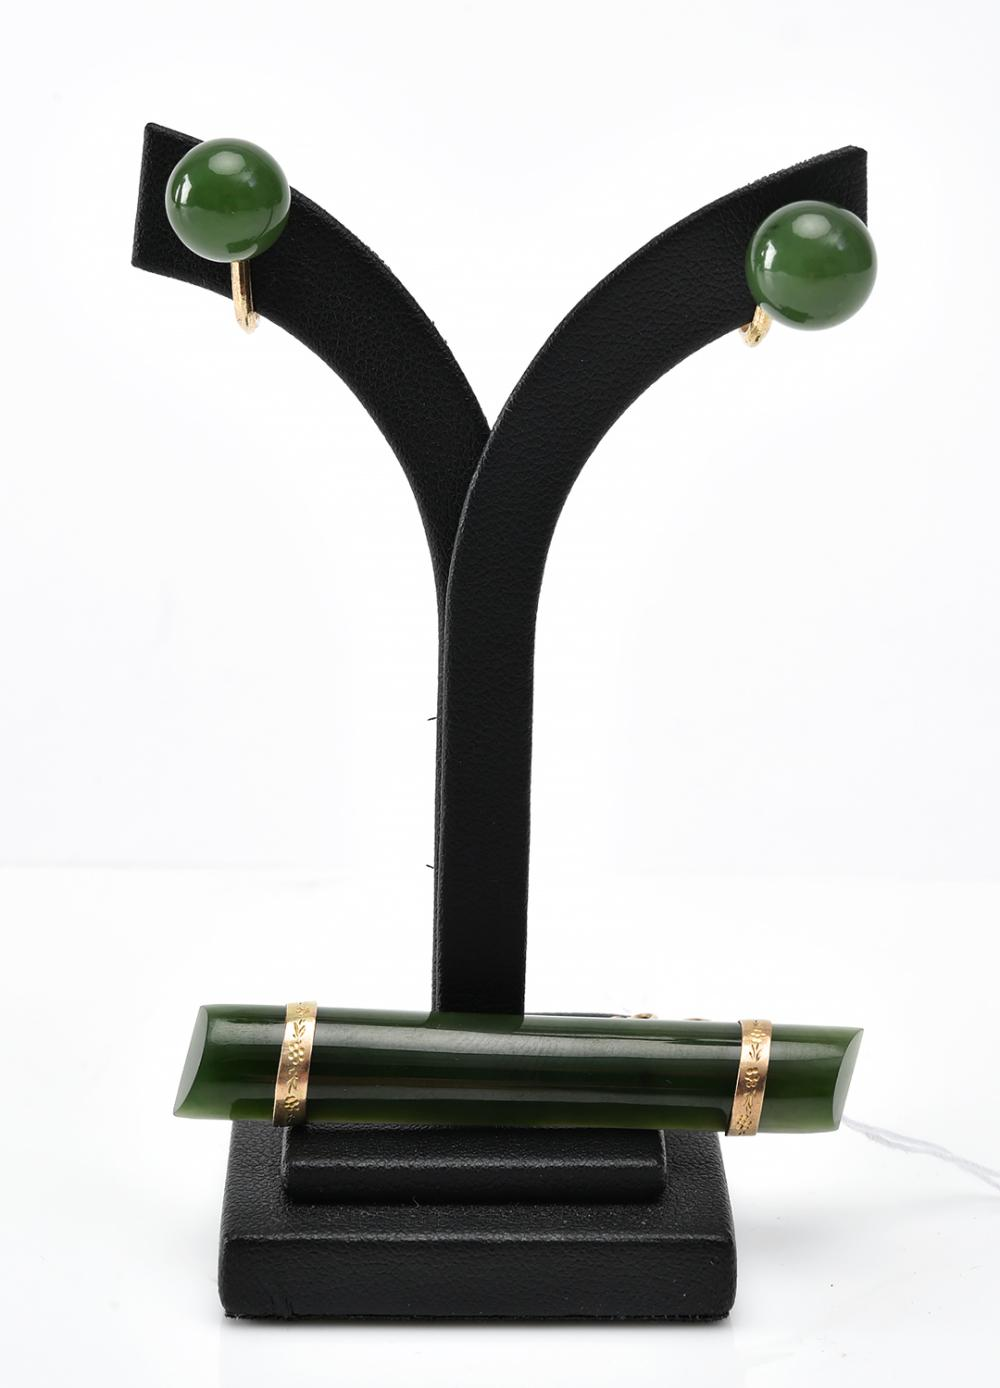 A PAIR OF NEPHRITE EARRINGS, WITH A BROOCH IN 9CT GOLD